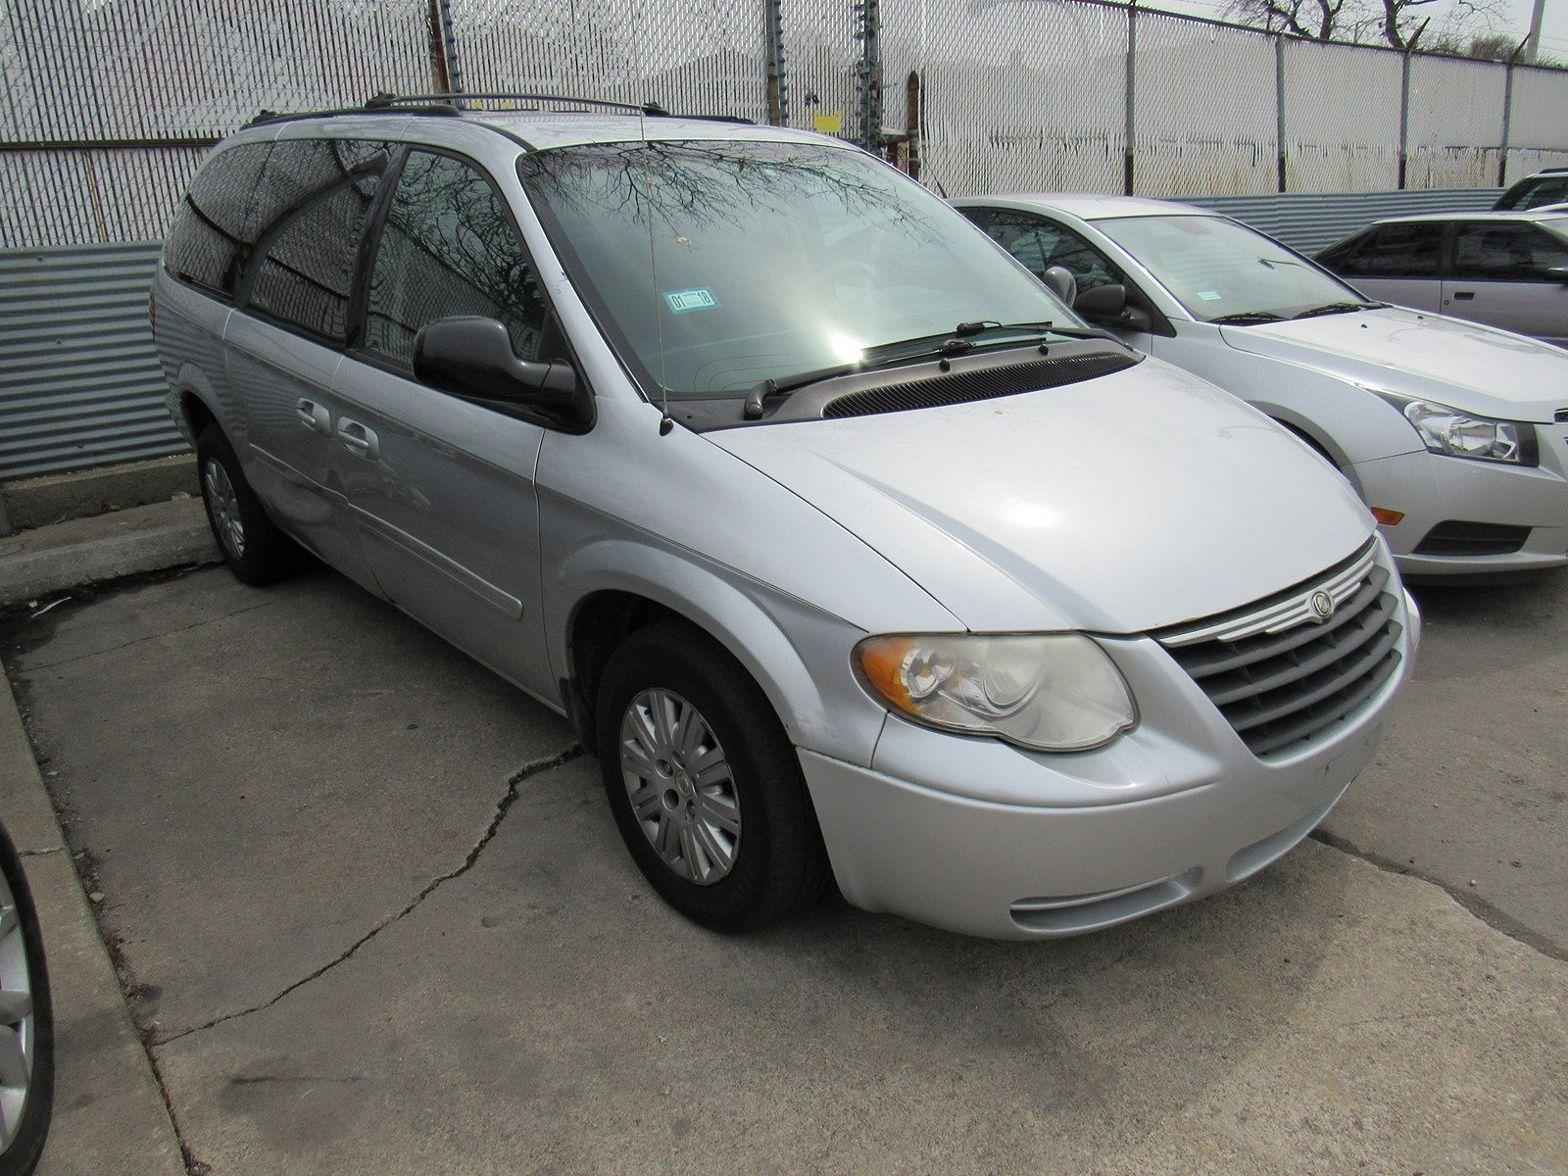 2006 Chrysler Town & Country $990